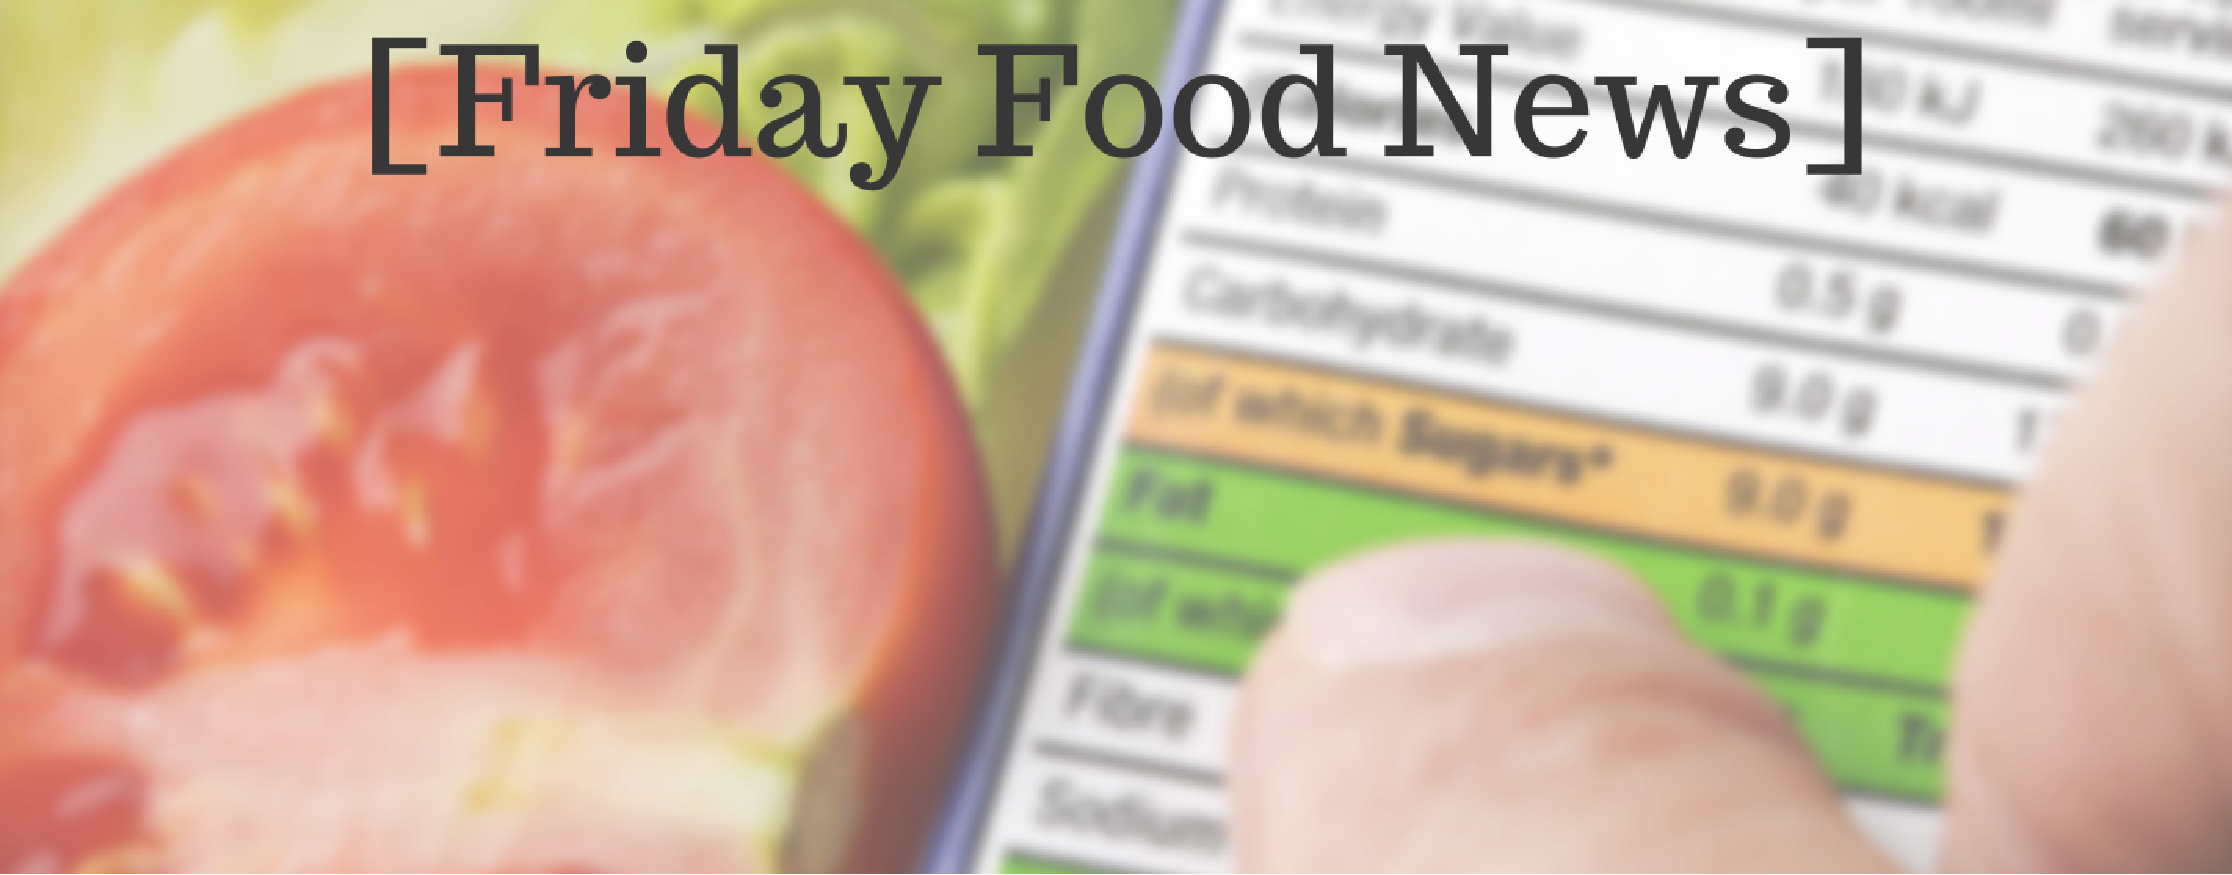 Friday Food News: Nutrition Draft Guidance, Campbell Soup Sides with Potassium Salt, and Vaccine for Salmonella